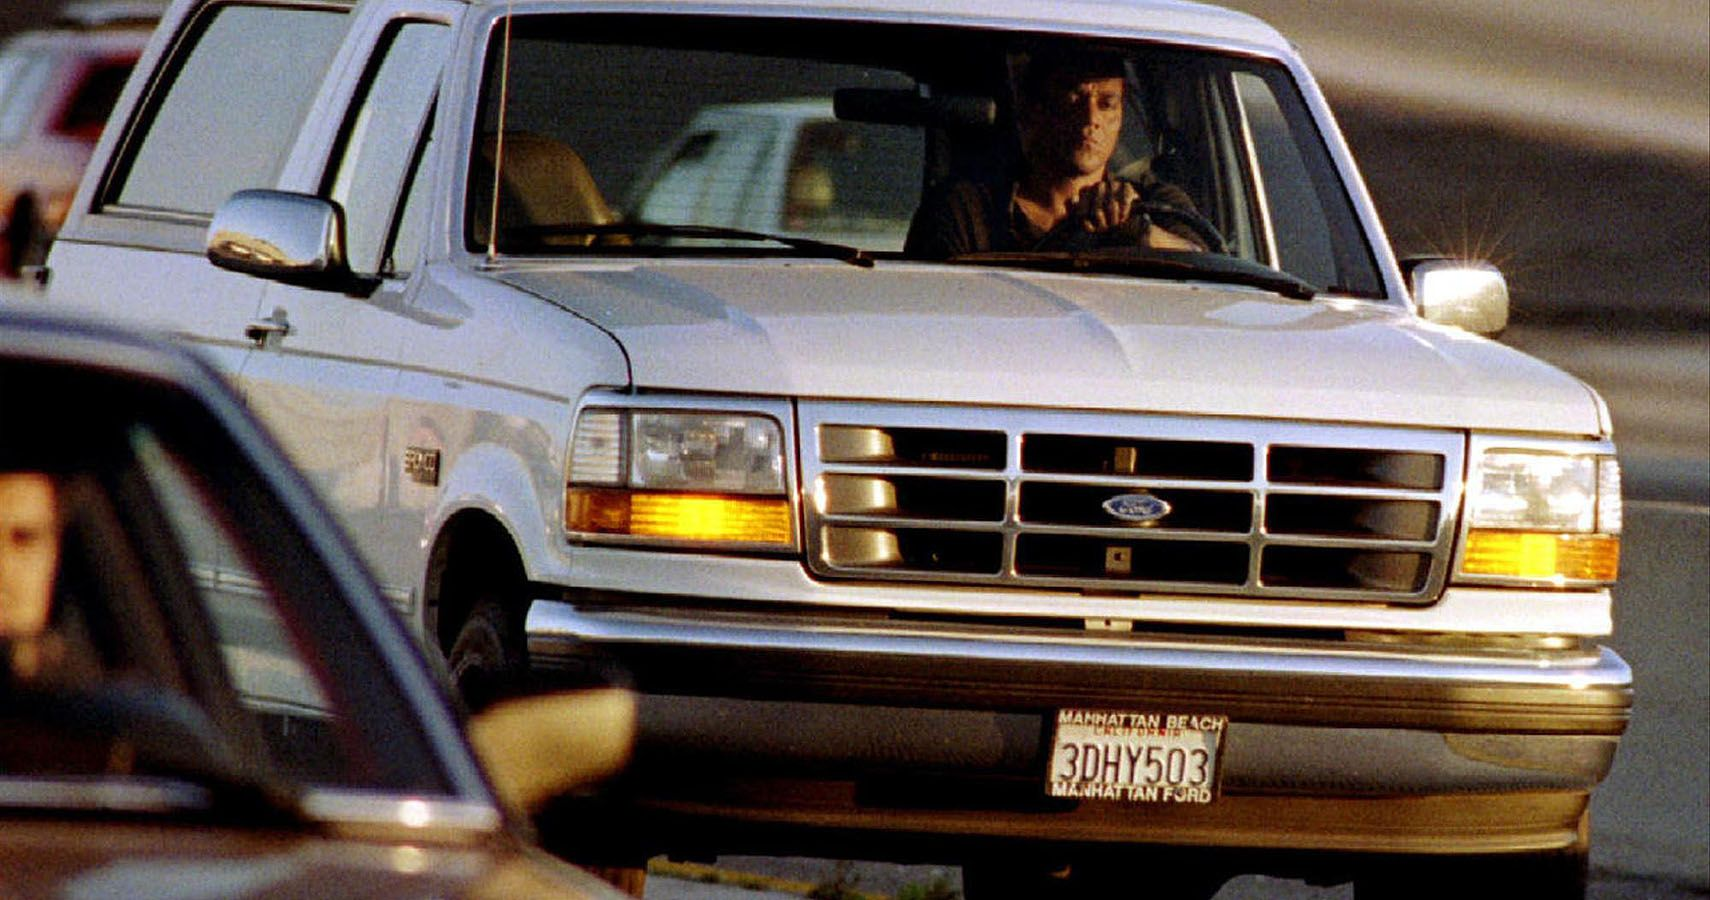 10 Things You Didn't Know About OJ's White Ford Bronco